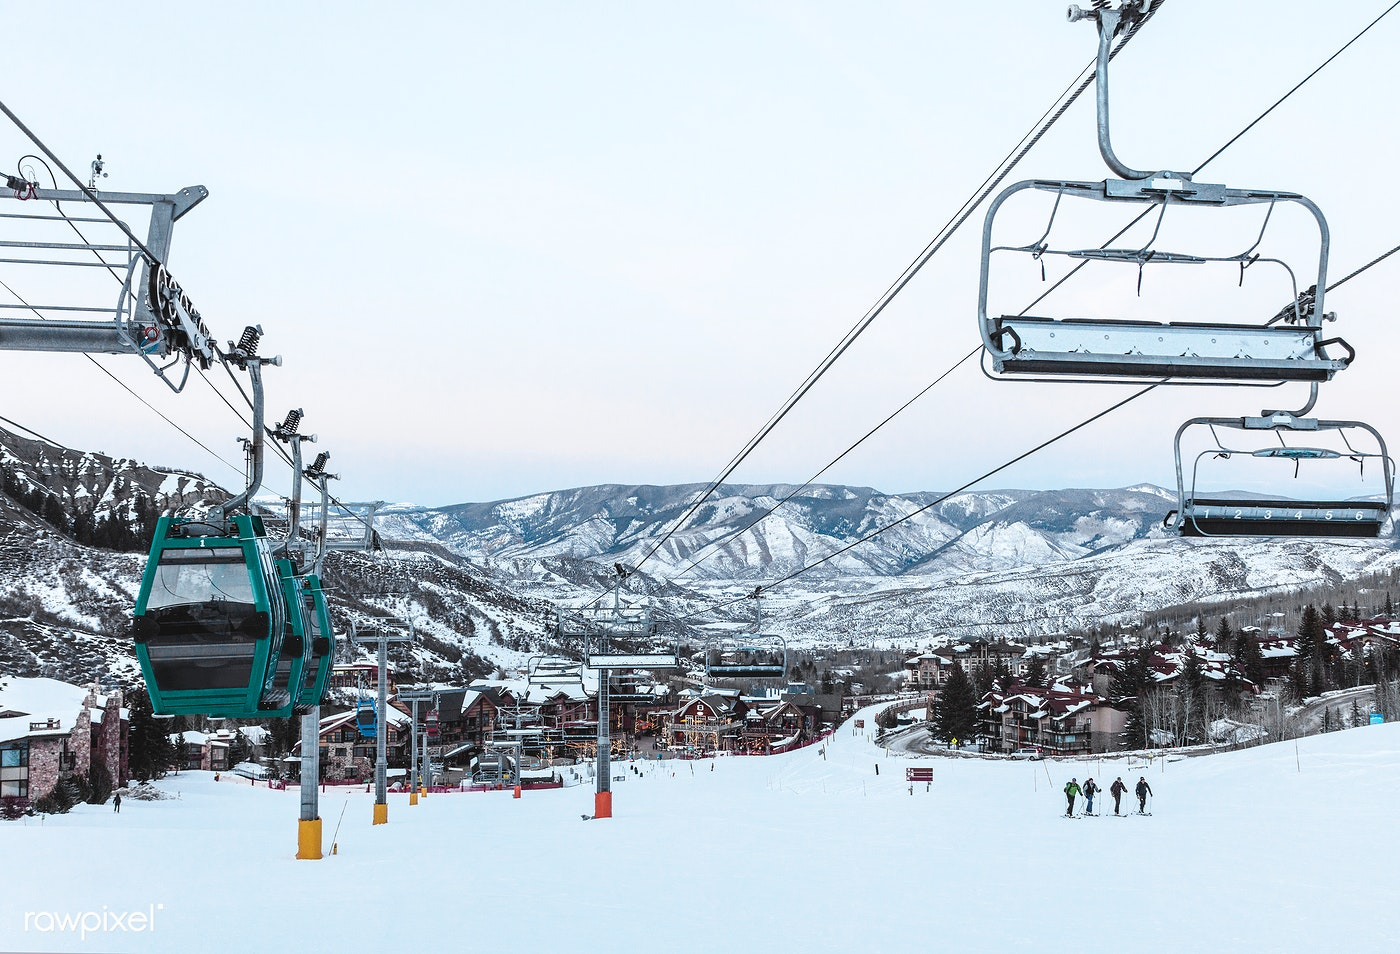 Chairlifts ascend the mountain at the Snowmass Village ski resort in Pitkin County, Colorado - Original image from Carol M....